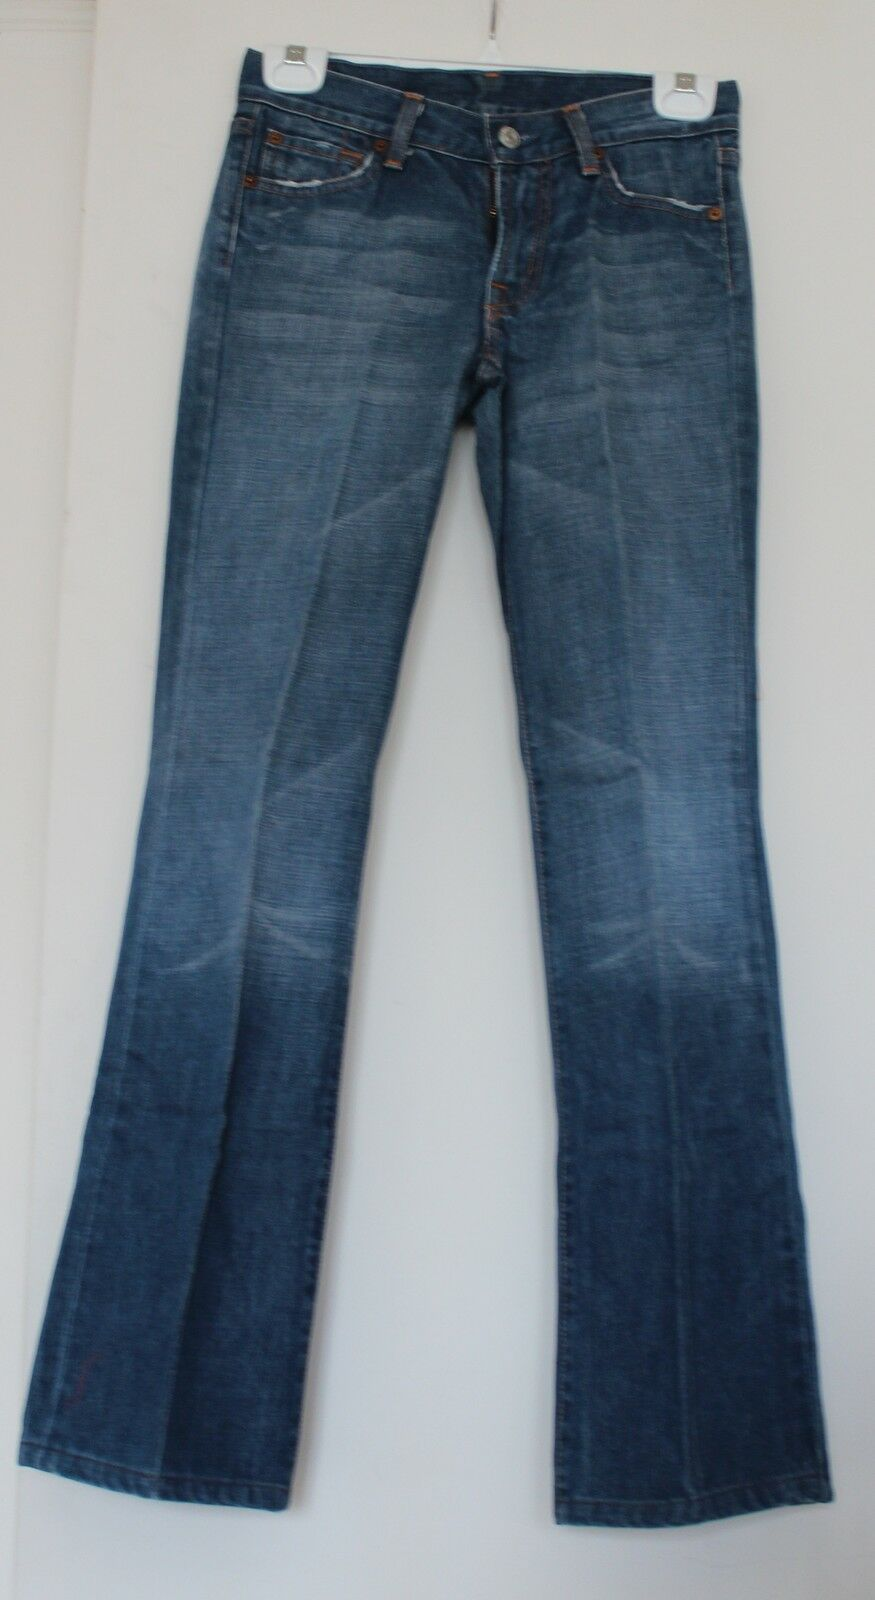 7 FOR ALL MANKIND Women's Boot Cut Jeans Sz 25 (Pre-owned)